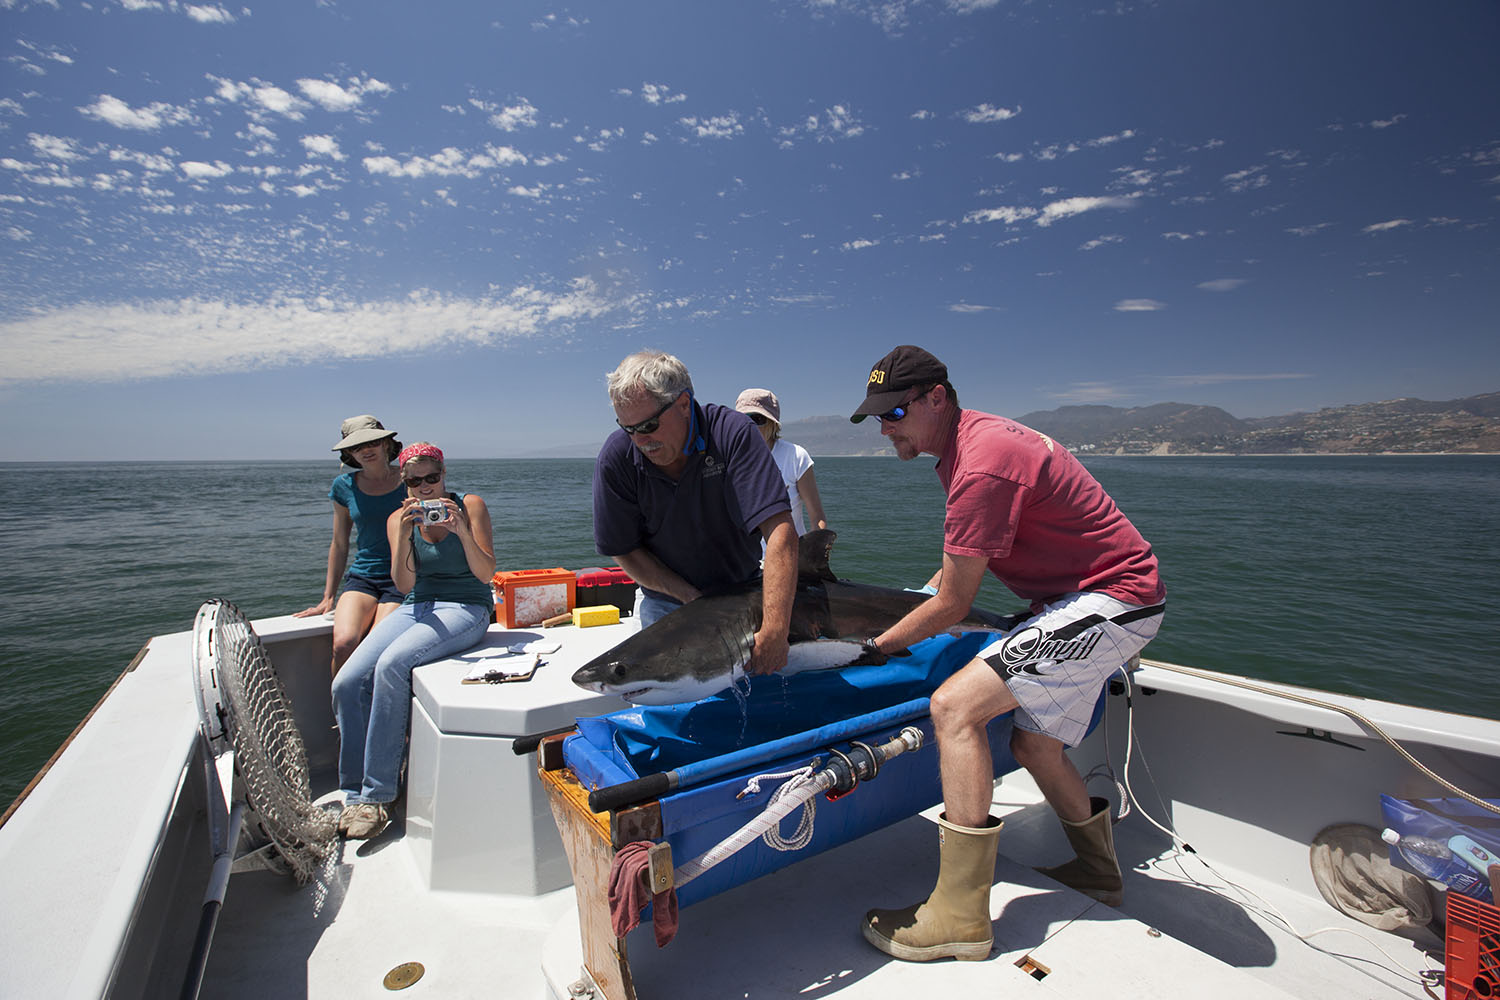 Dr. Lowe and his team release a juvenile white shark back to its inshore waters, it's so cuuuute!